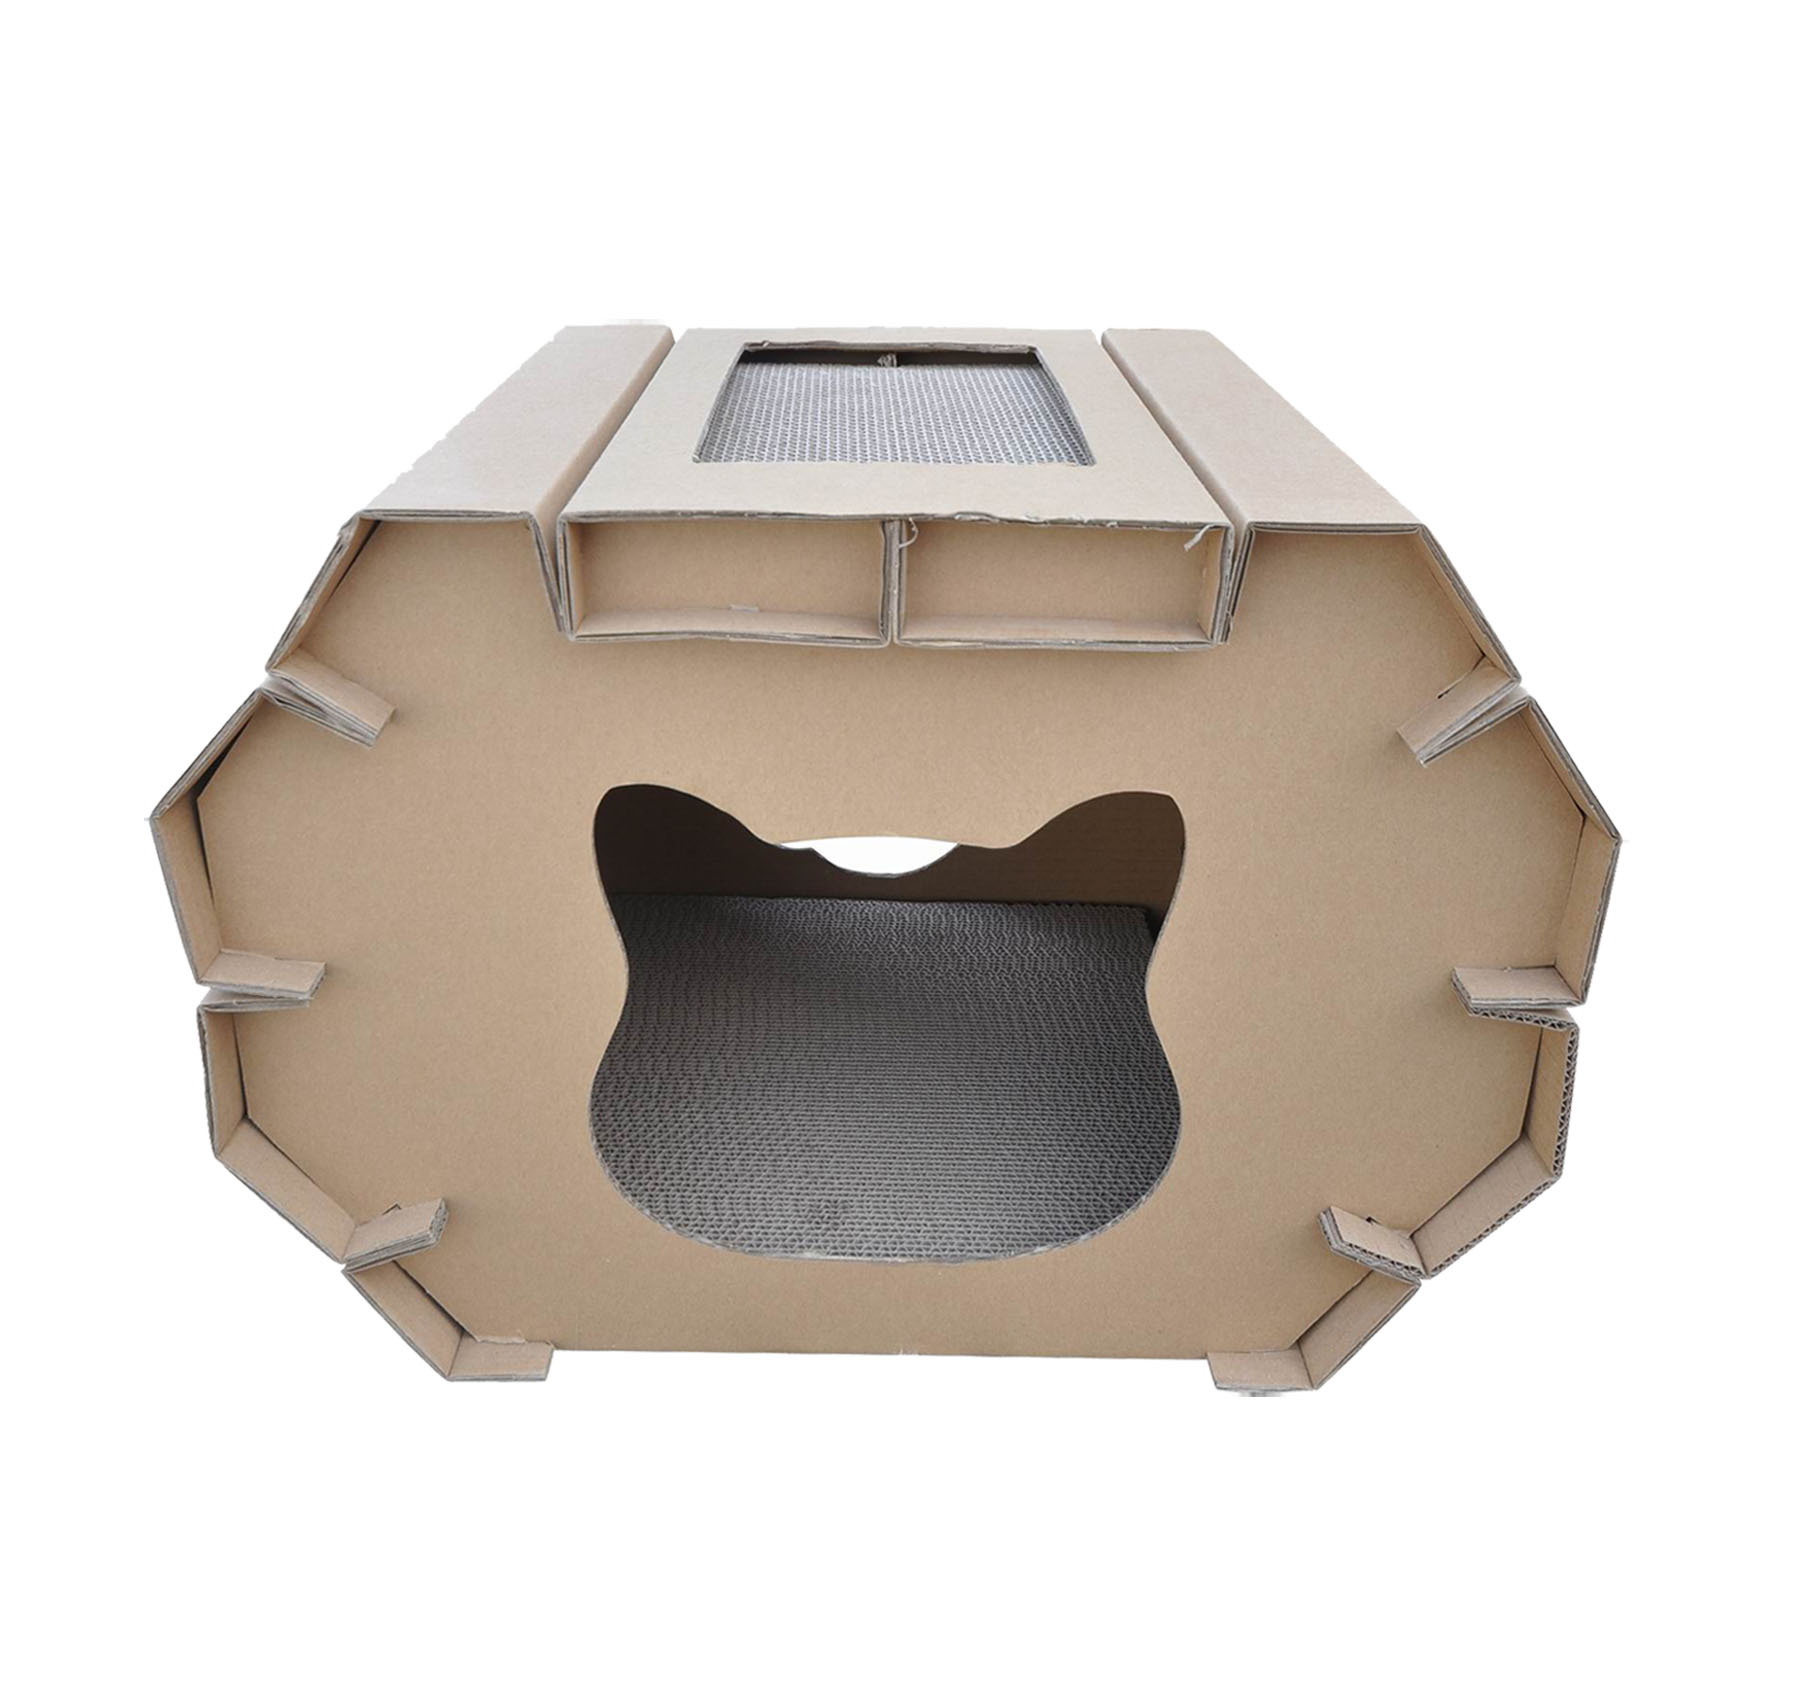 Eco Friendly Indoor Cardboard Cat House For Hot Sale Pet House Cats Buy Cat House Cardboard Cat House Indoor Cat House Product On Alibaba Com